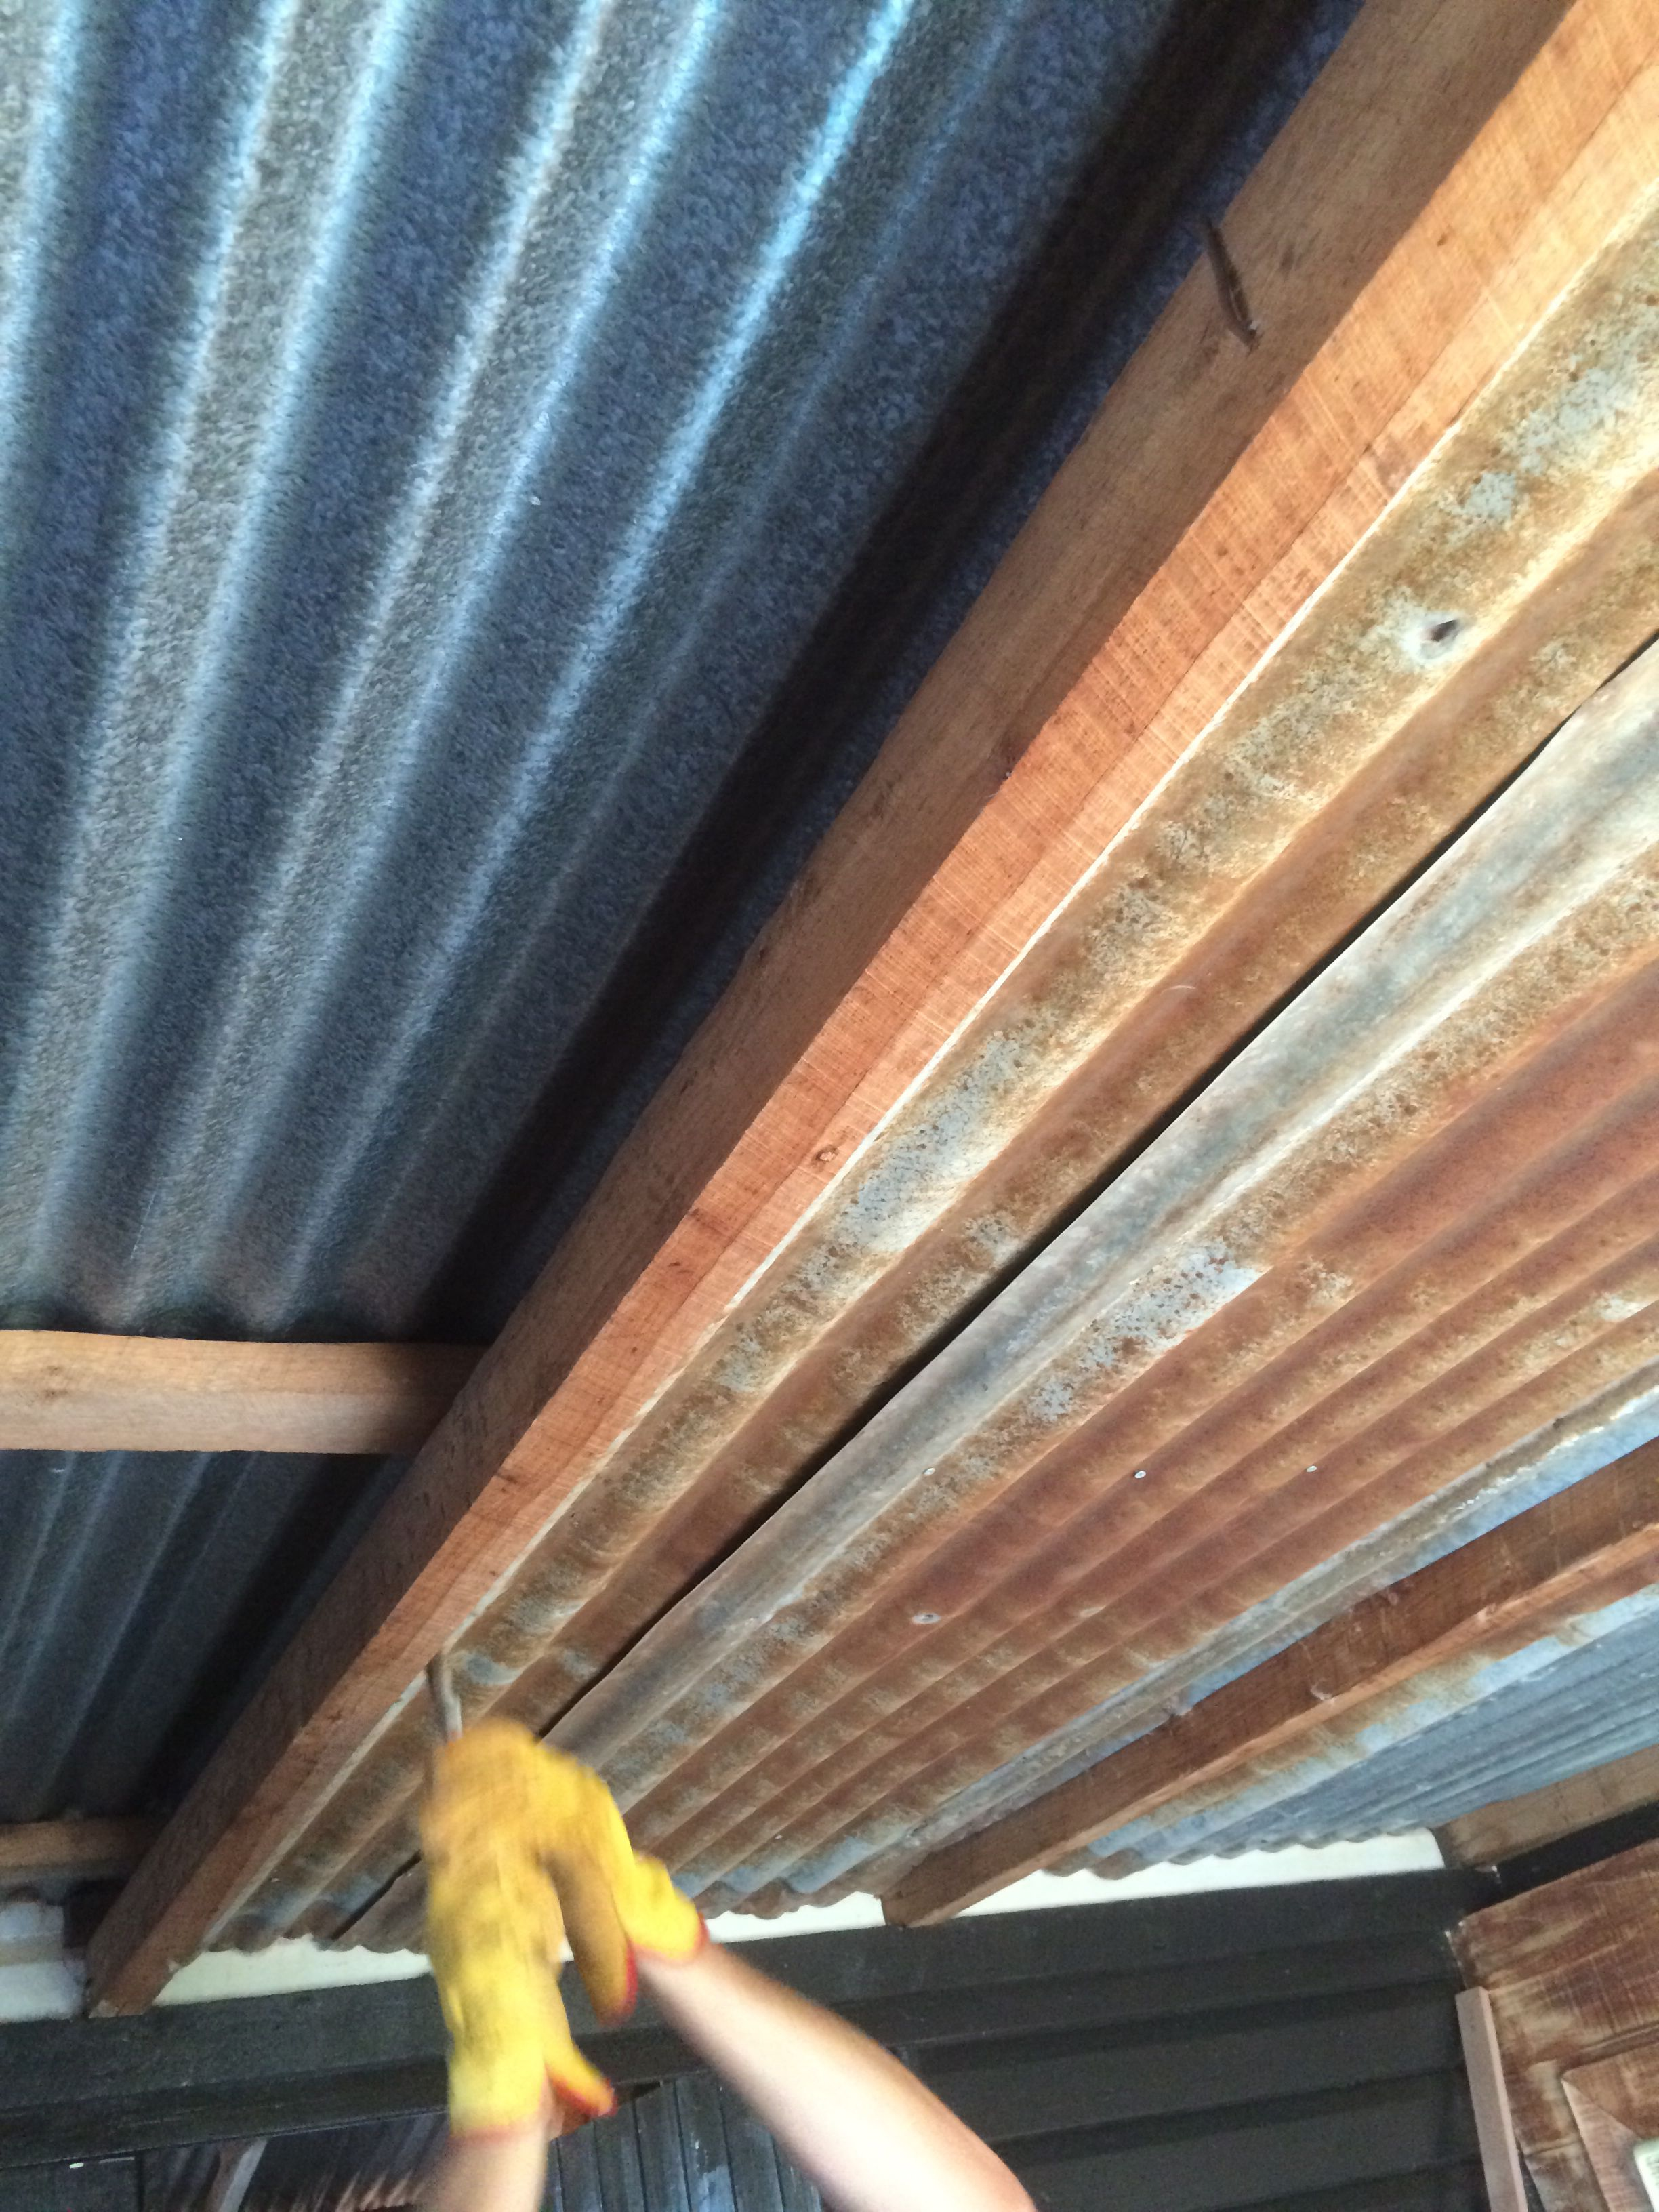 Insulation Bats And A Sheet Of Rusty Corrugated Iron For Ceiling